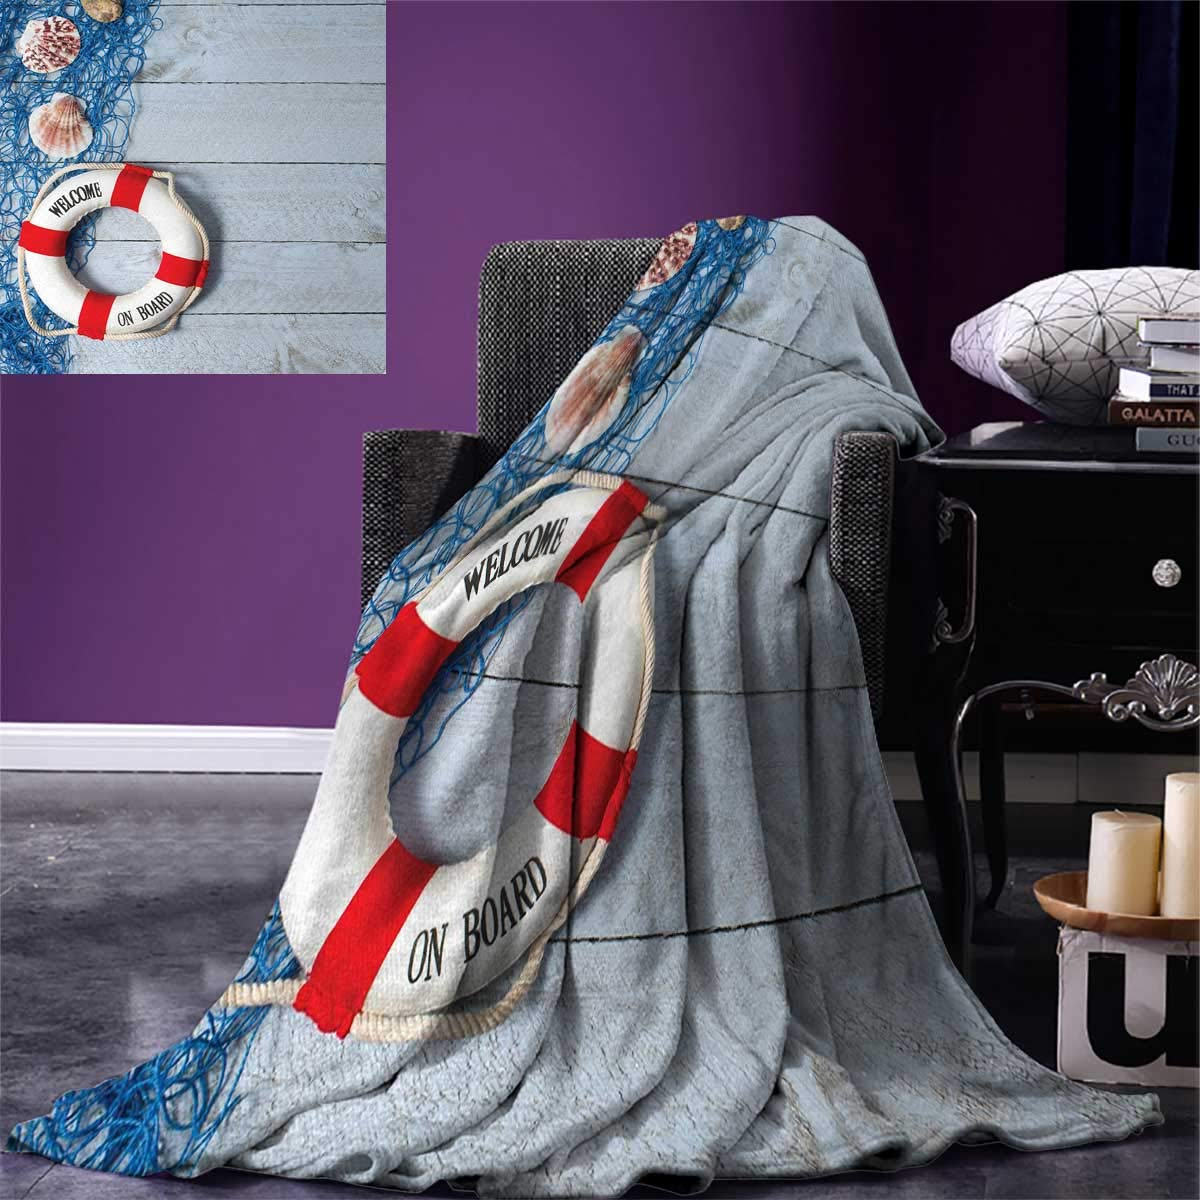 Anniutwo Buoy Throw Blanket Welcome on Board Message on Lifebuoy Fishing Net Seashell Wood Floor Boat Warm Microfiber All Season Blanket Bed Couch 50''x30'' Dust Blue Red